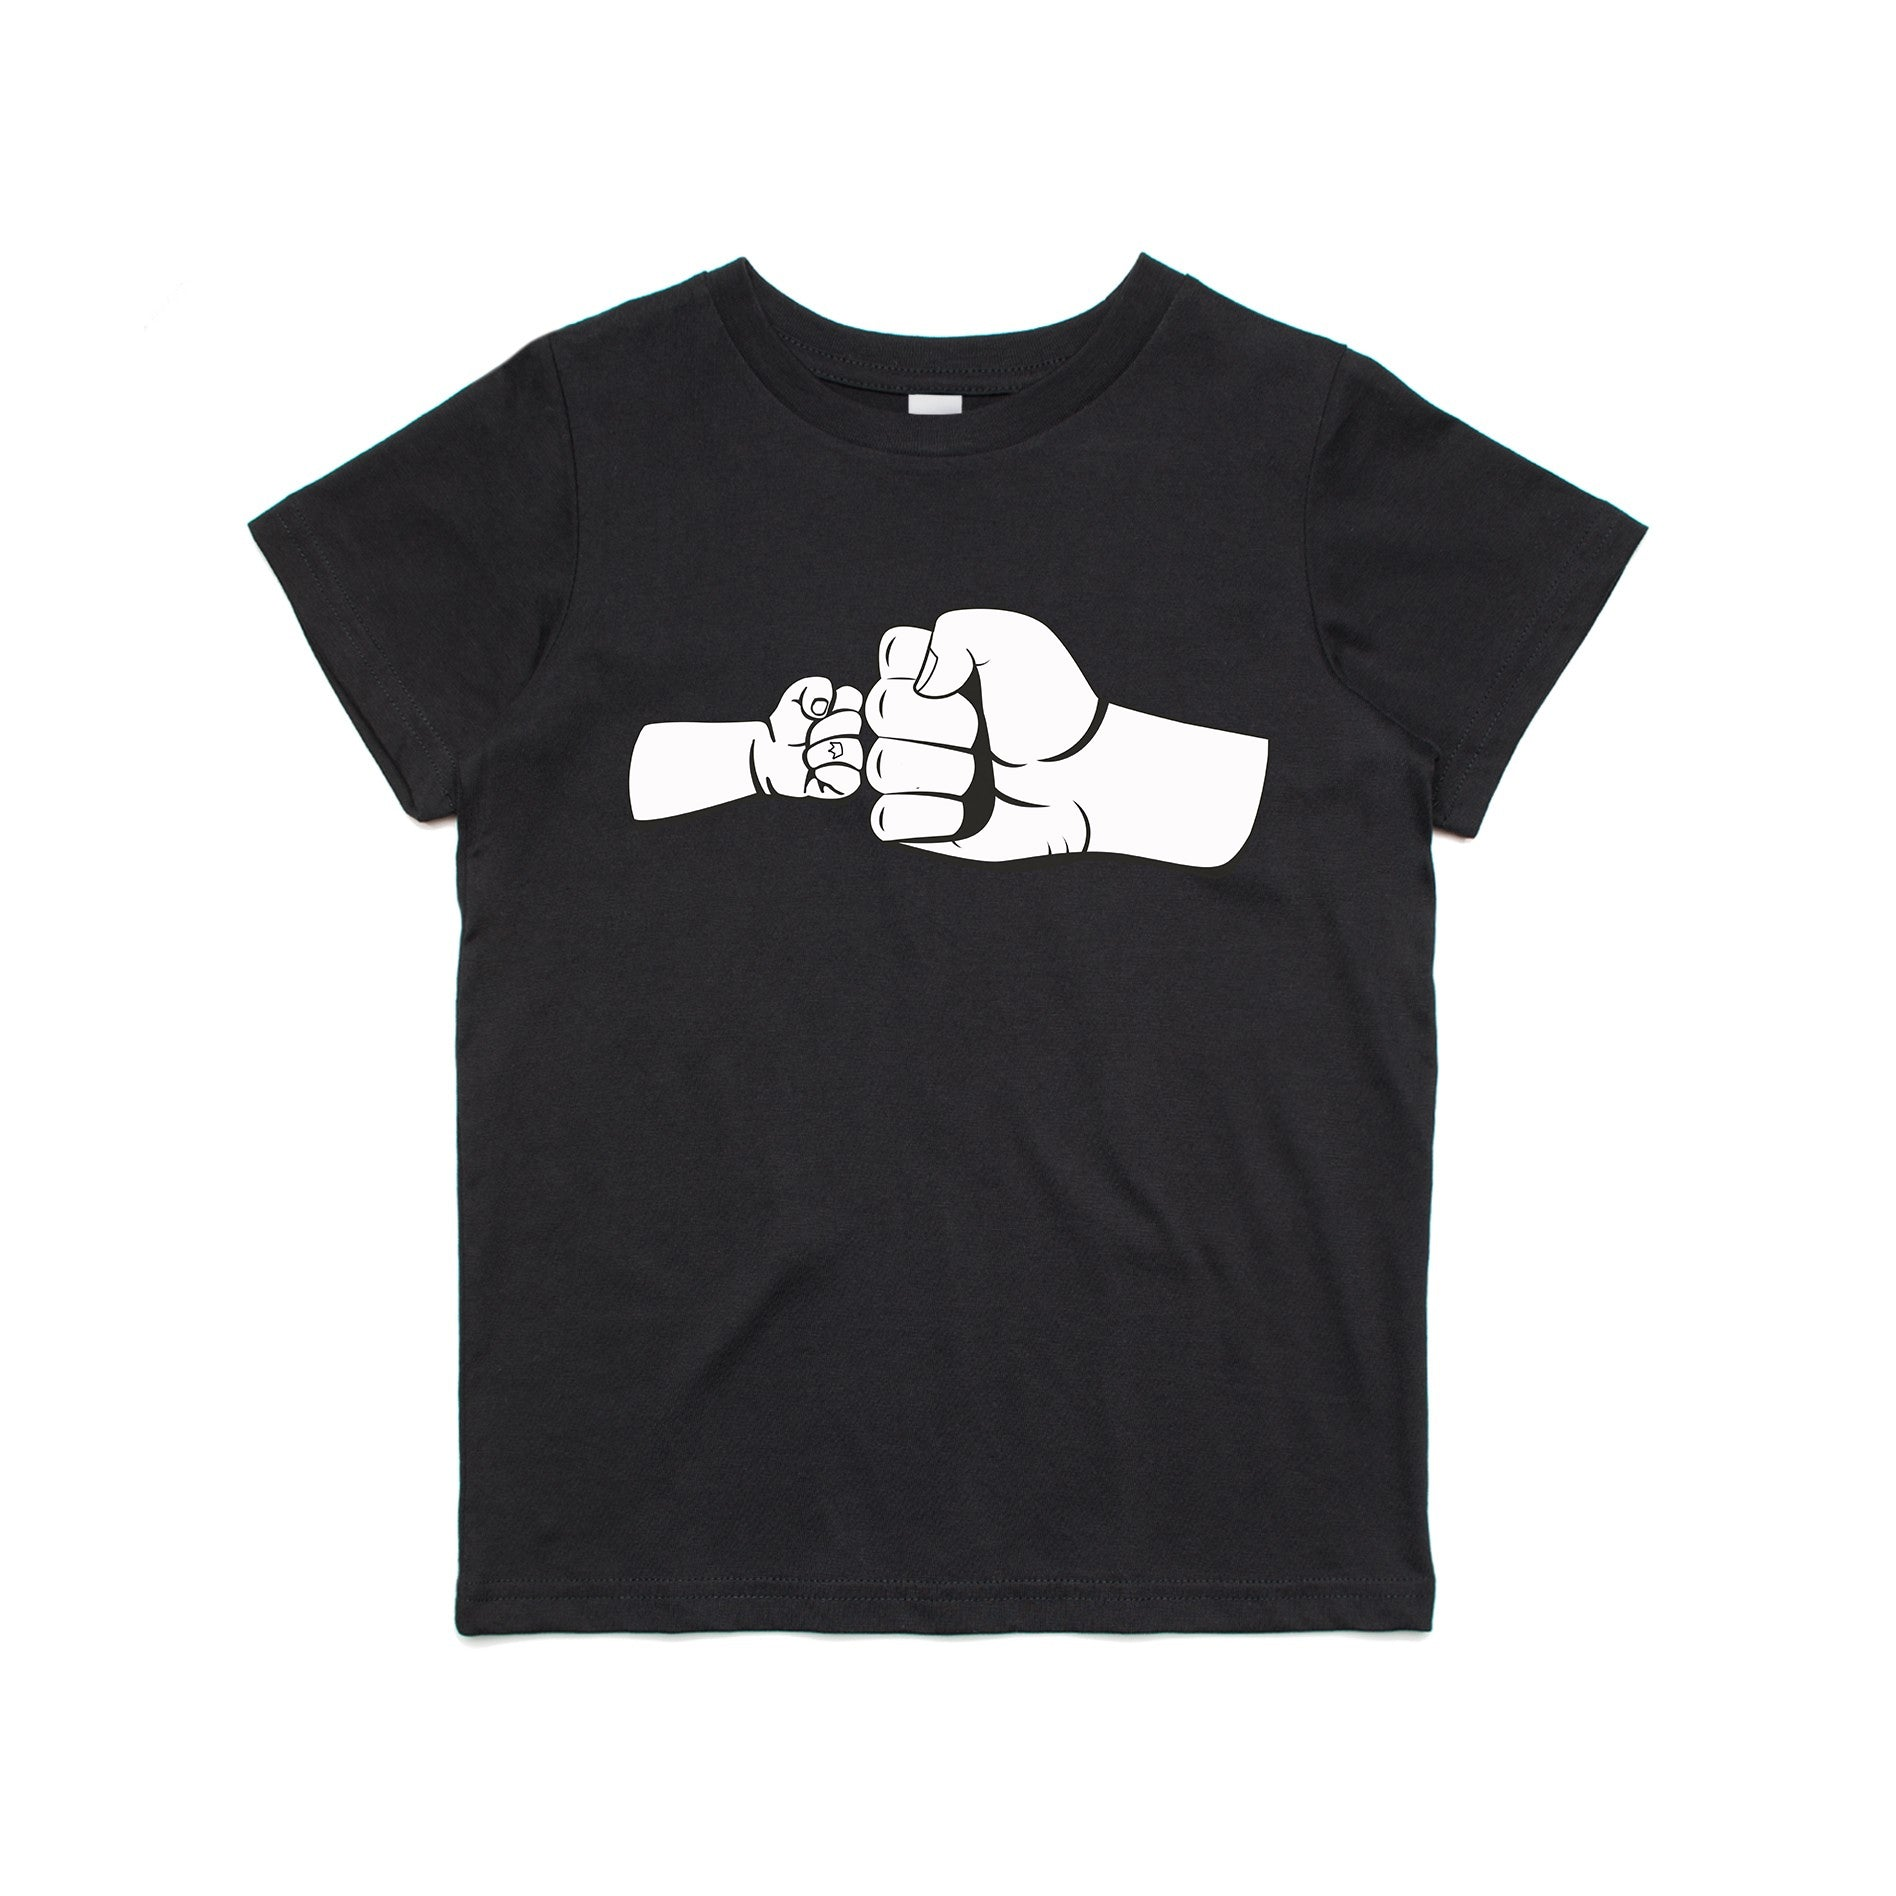 'Let's Pound It' Kids T-shirt